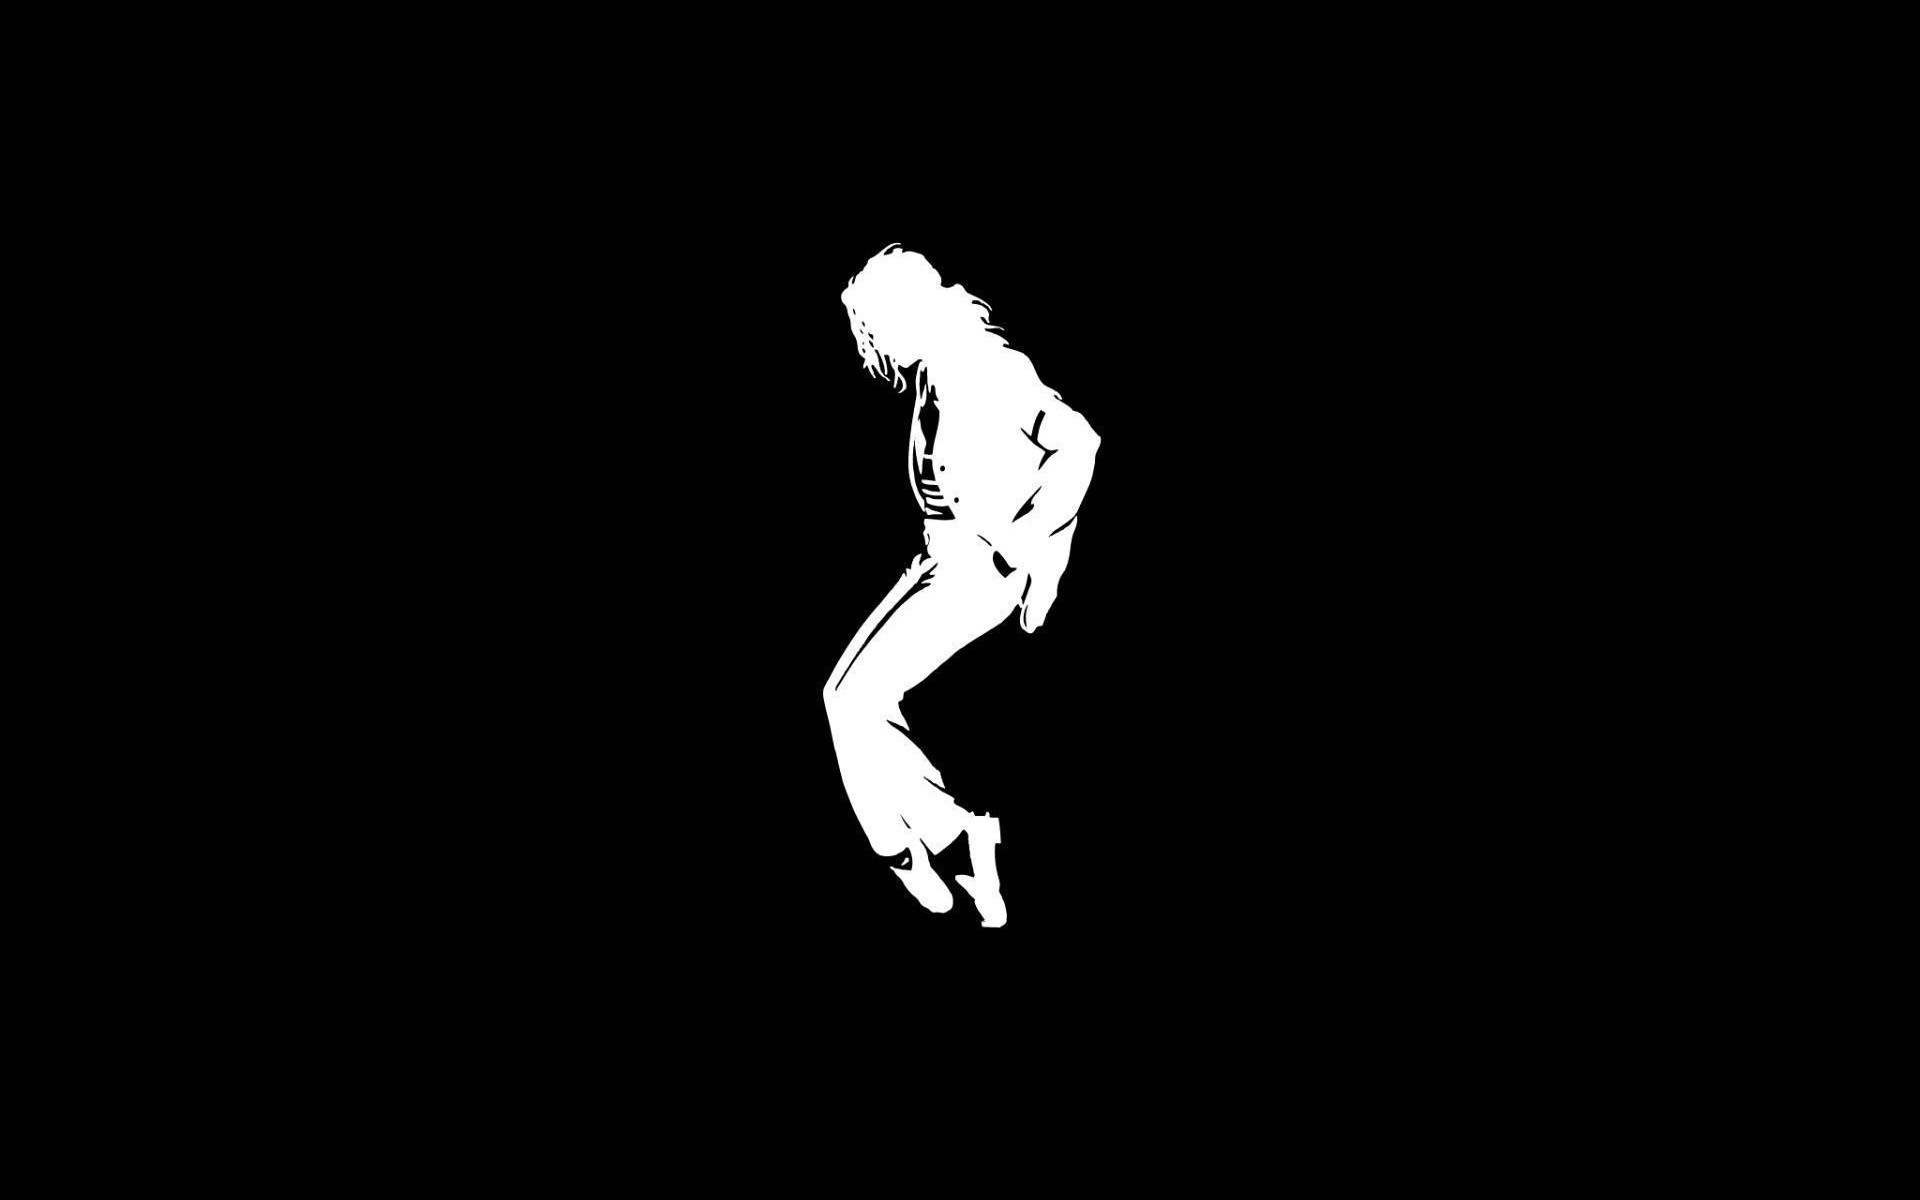 michael jackson shadow